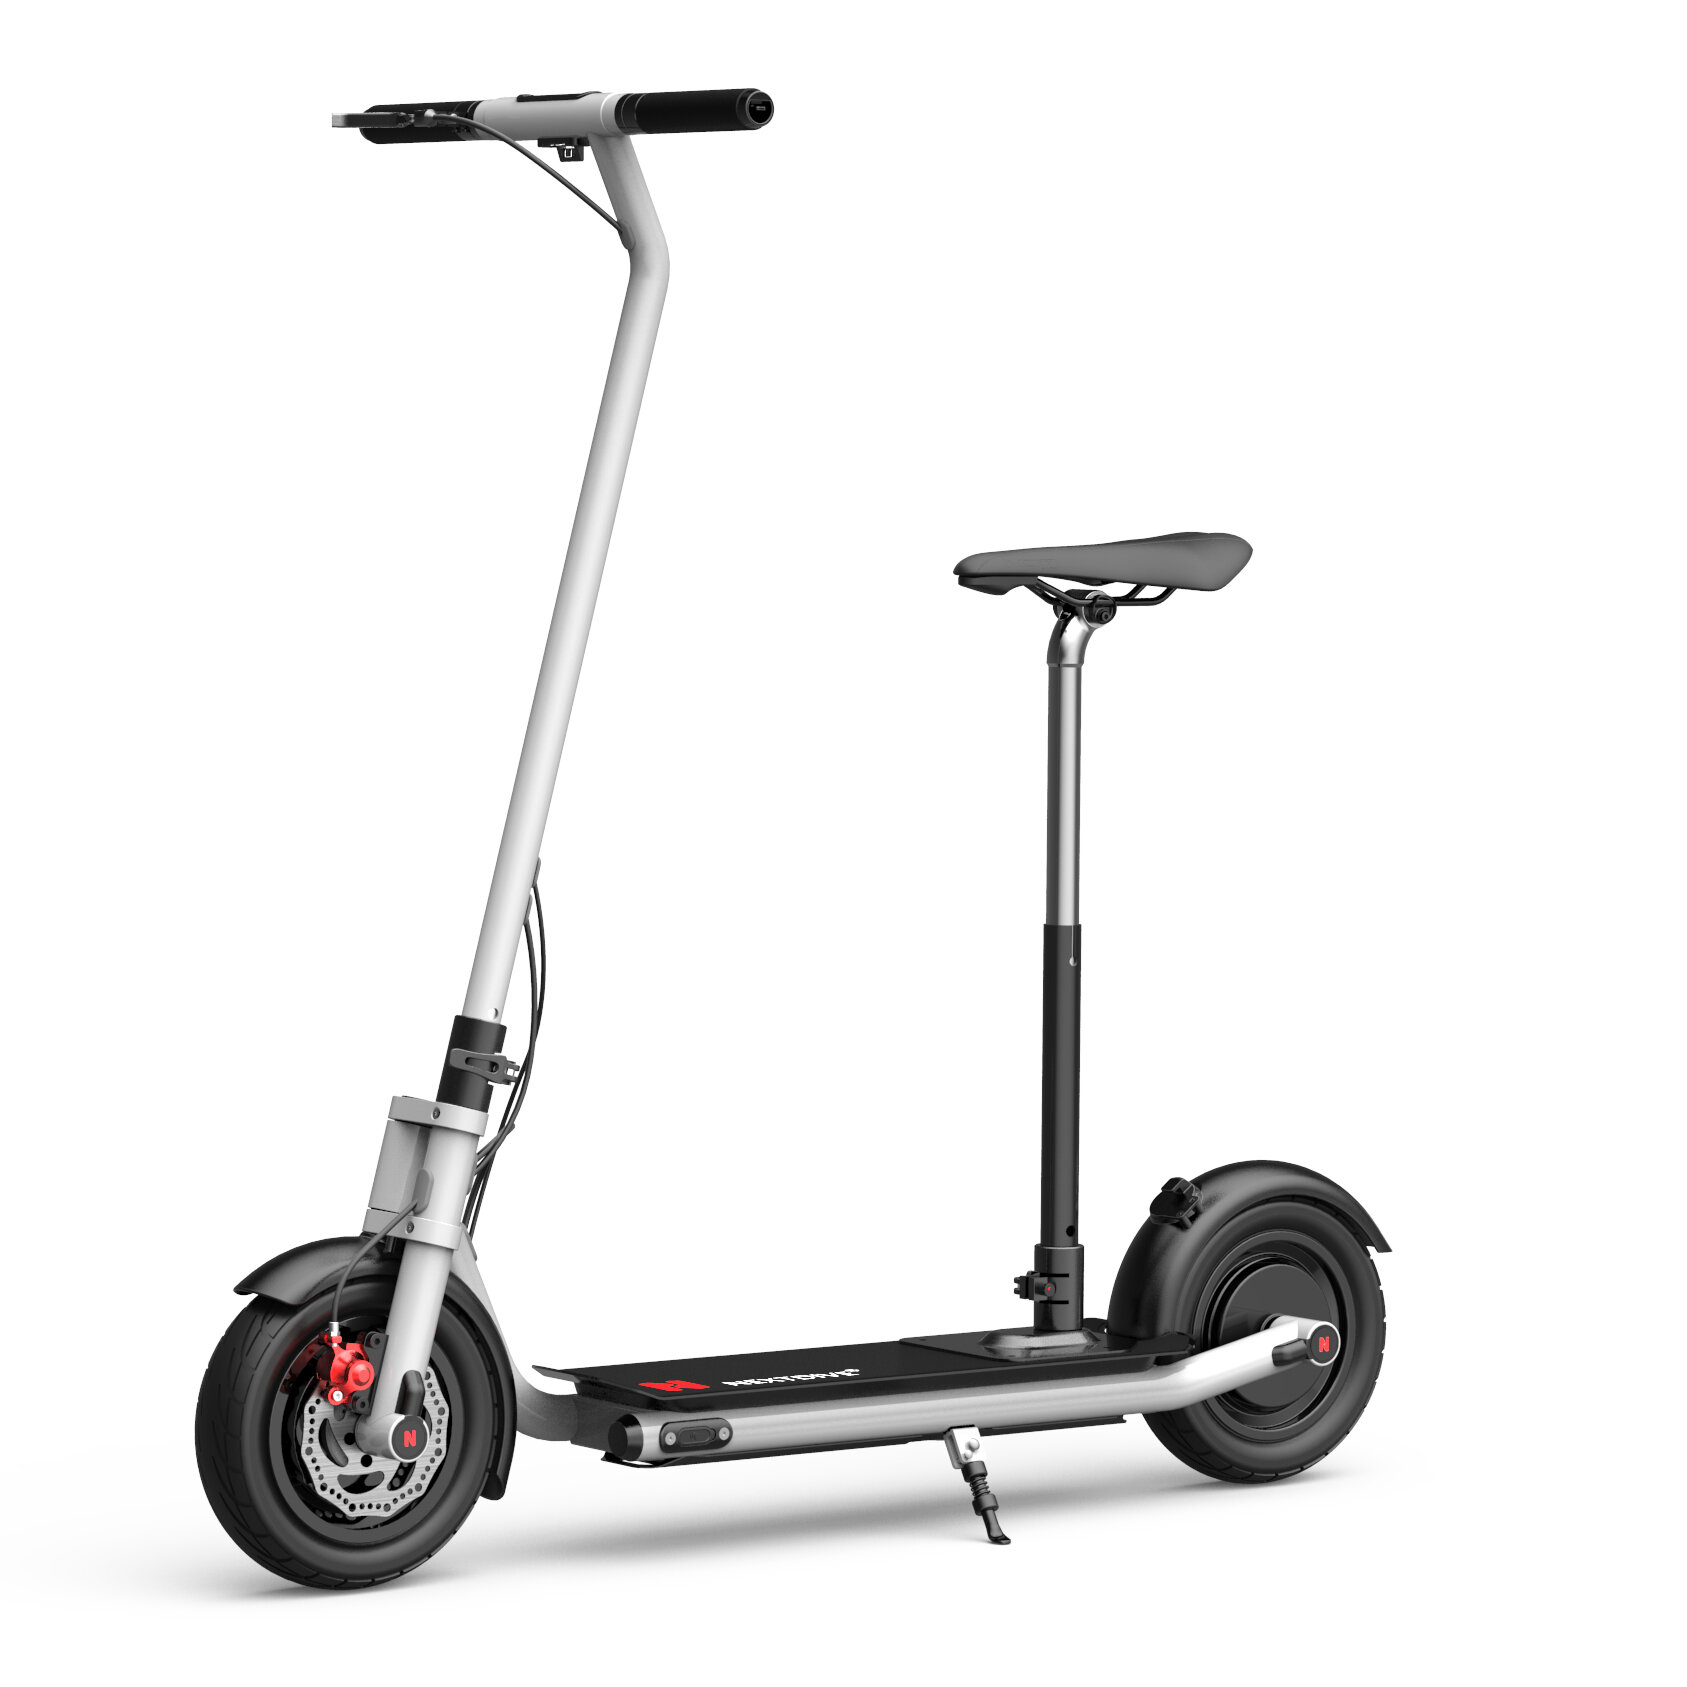 NEXTDRIVE N-7 300W 36V 7.8Ah Foldable Electric Scooter With Saddle For Adults/Kids 26 Km/h Max Speed 22 Km Mileage